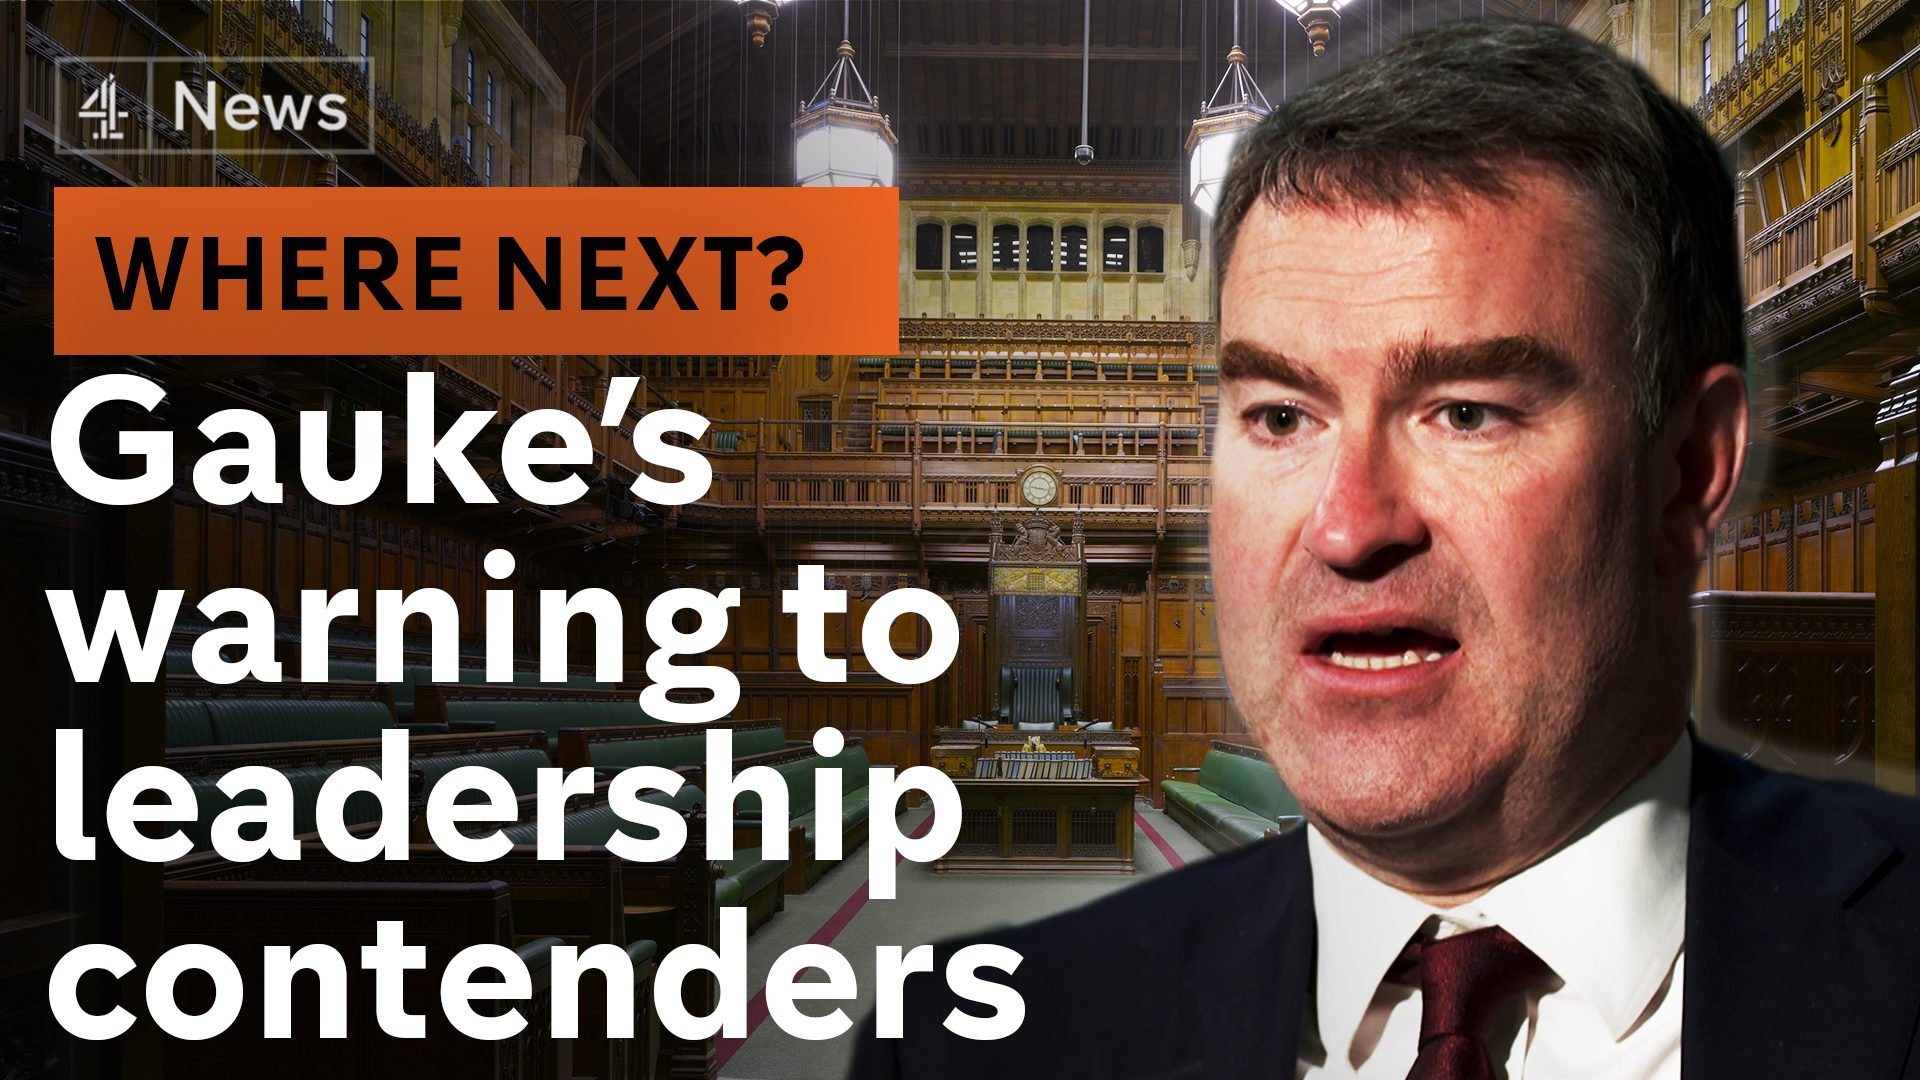 Justice Secretary warns leadership contenders: lurch right and we split   Politics: Where Next? podcast